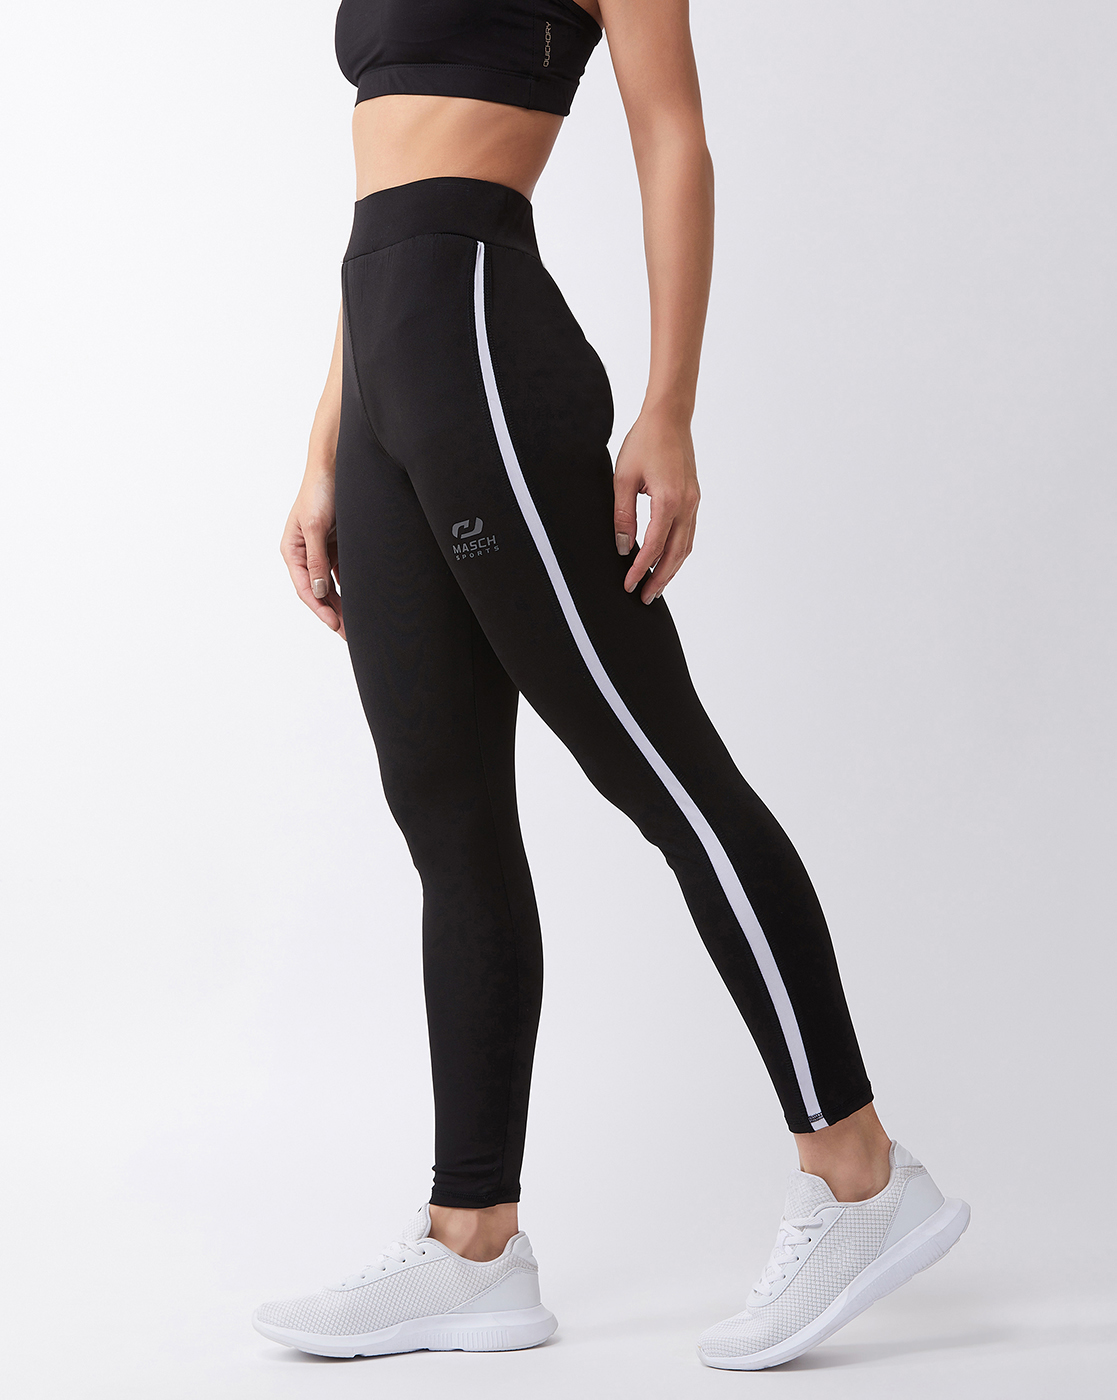 Masch Sports   Masch Sports Women's Black Solid Sports Tights with White Side Stripe